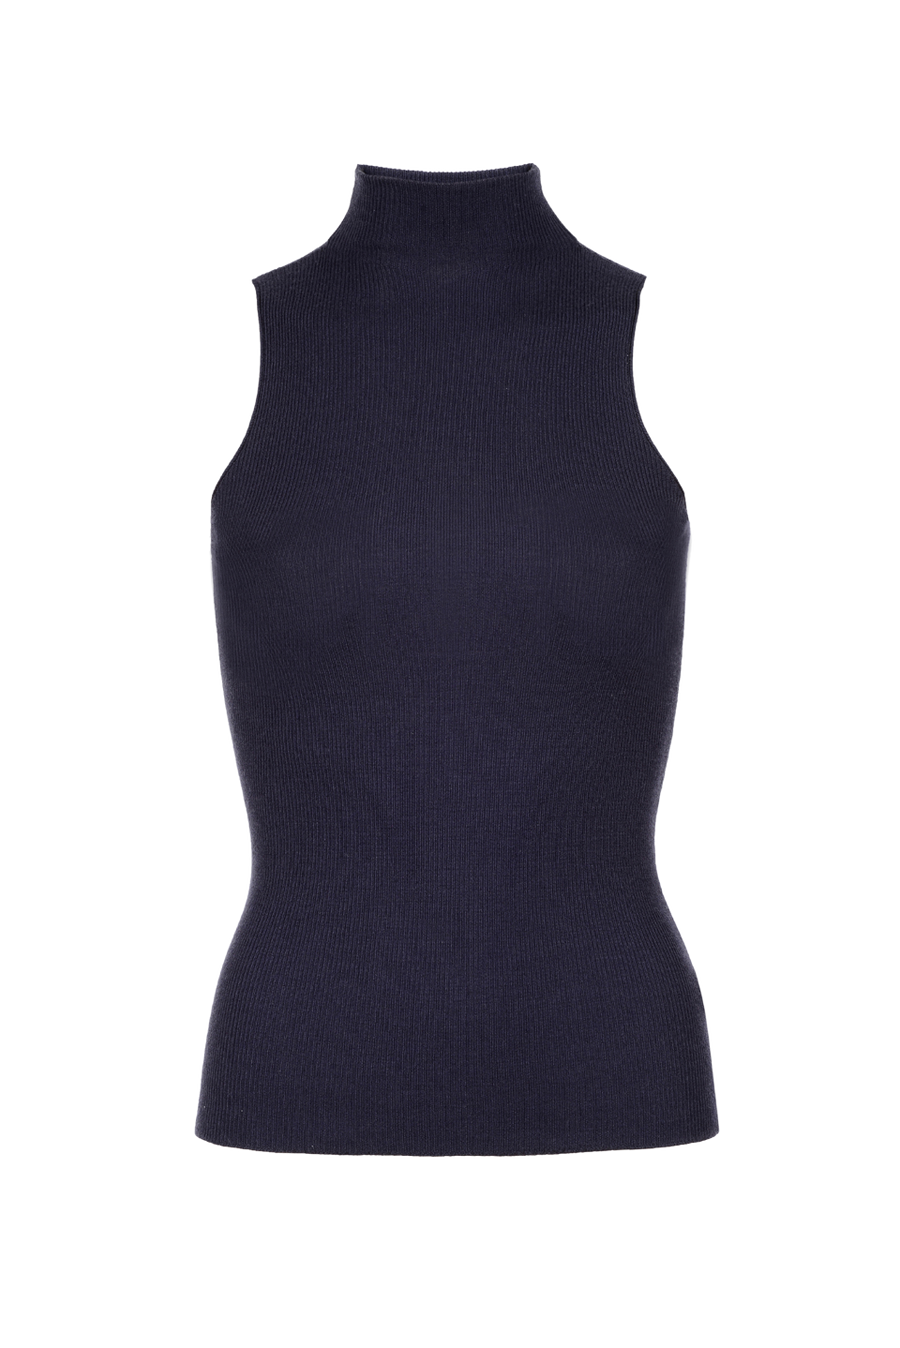 THE SANTORINI SLEEVELESS TURTLE NECK KNIT